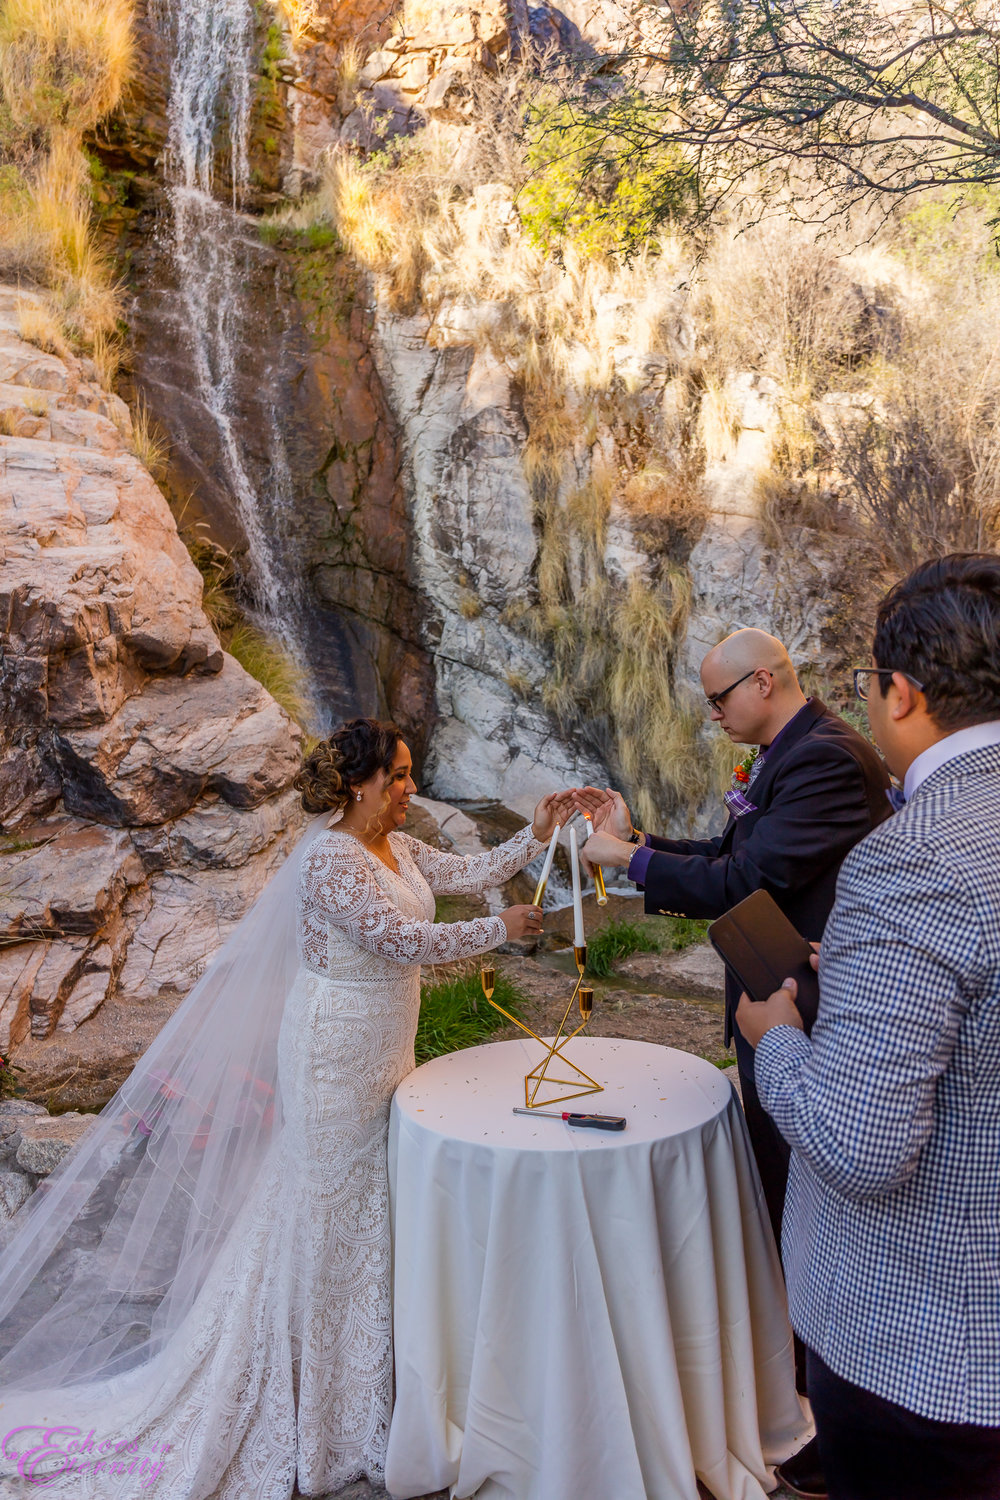 The Wedding of Zuri and George Tucson Arizona Wedding Photographer Lowes Ventana Canyon 08.jpg